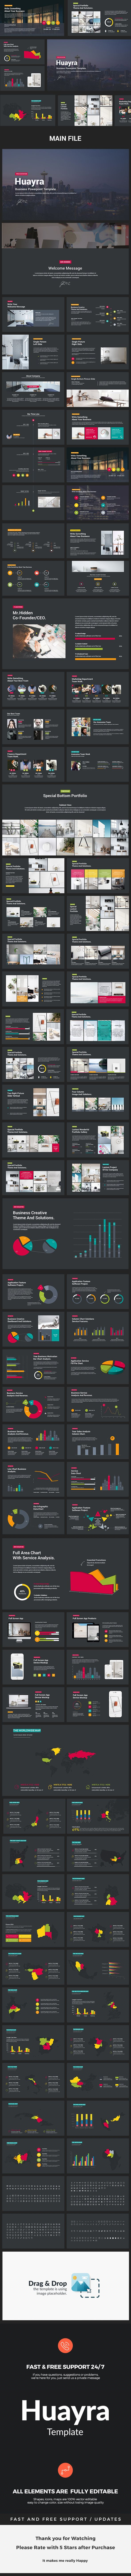 Huayra Business Powerpoint Template